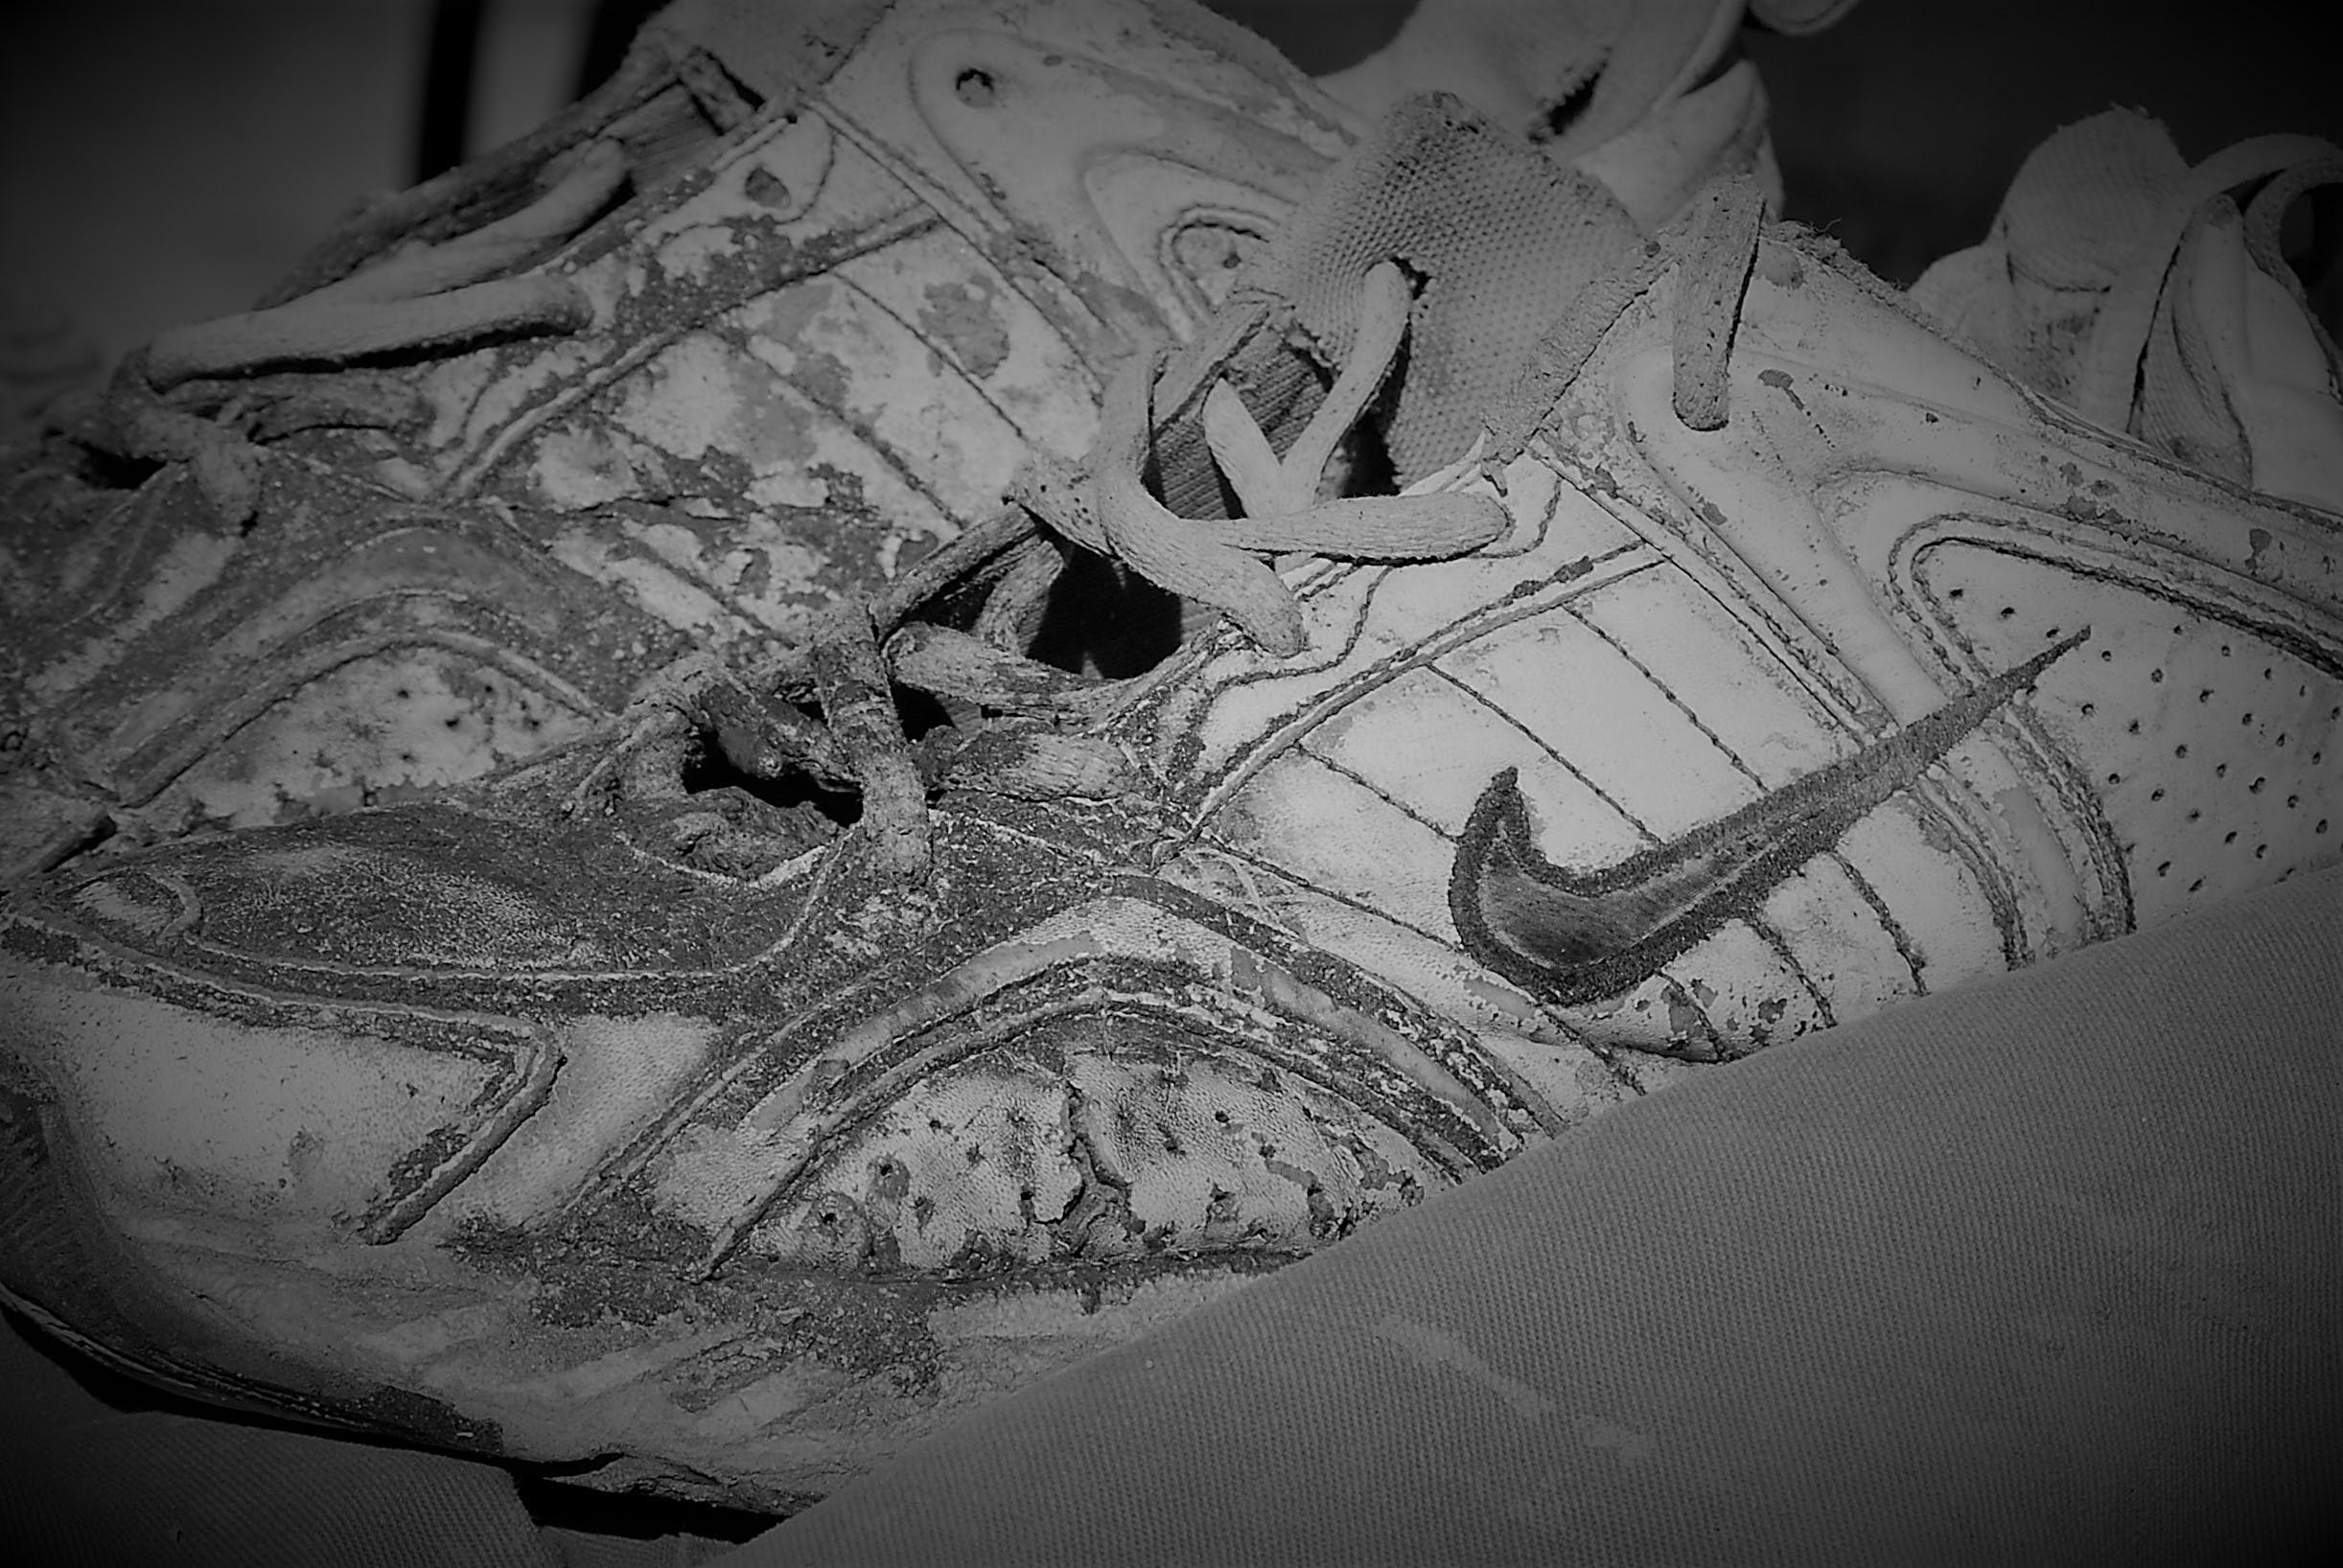 Free stock photo of Old Shoes Black White Worn Nike Running Shoes